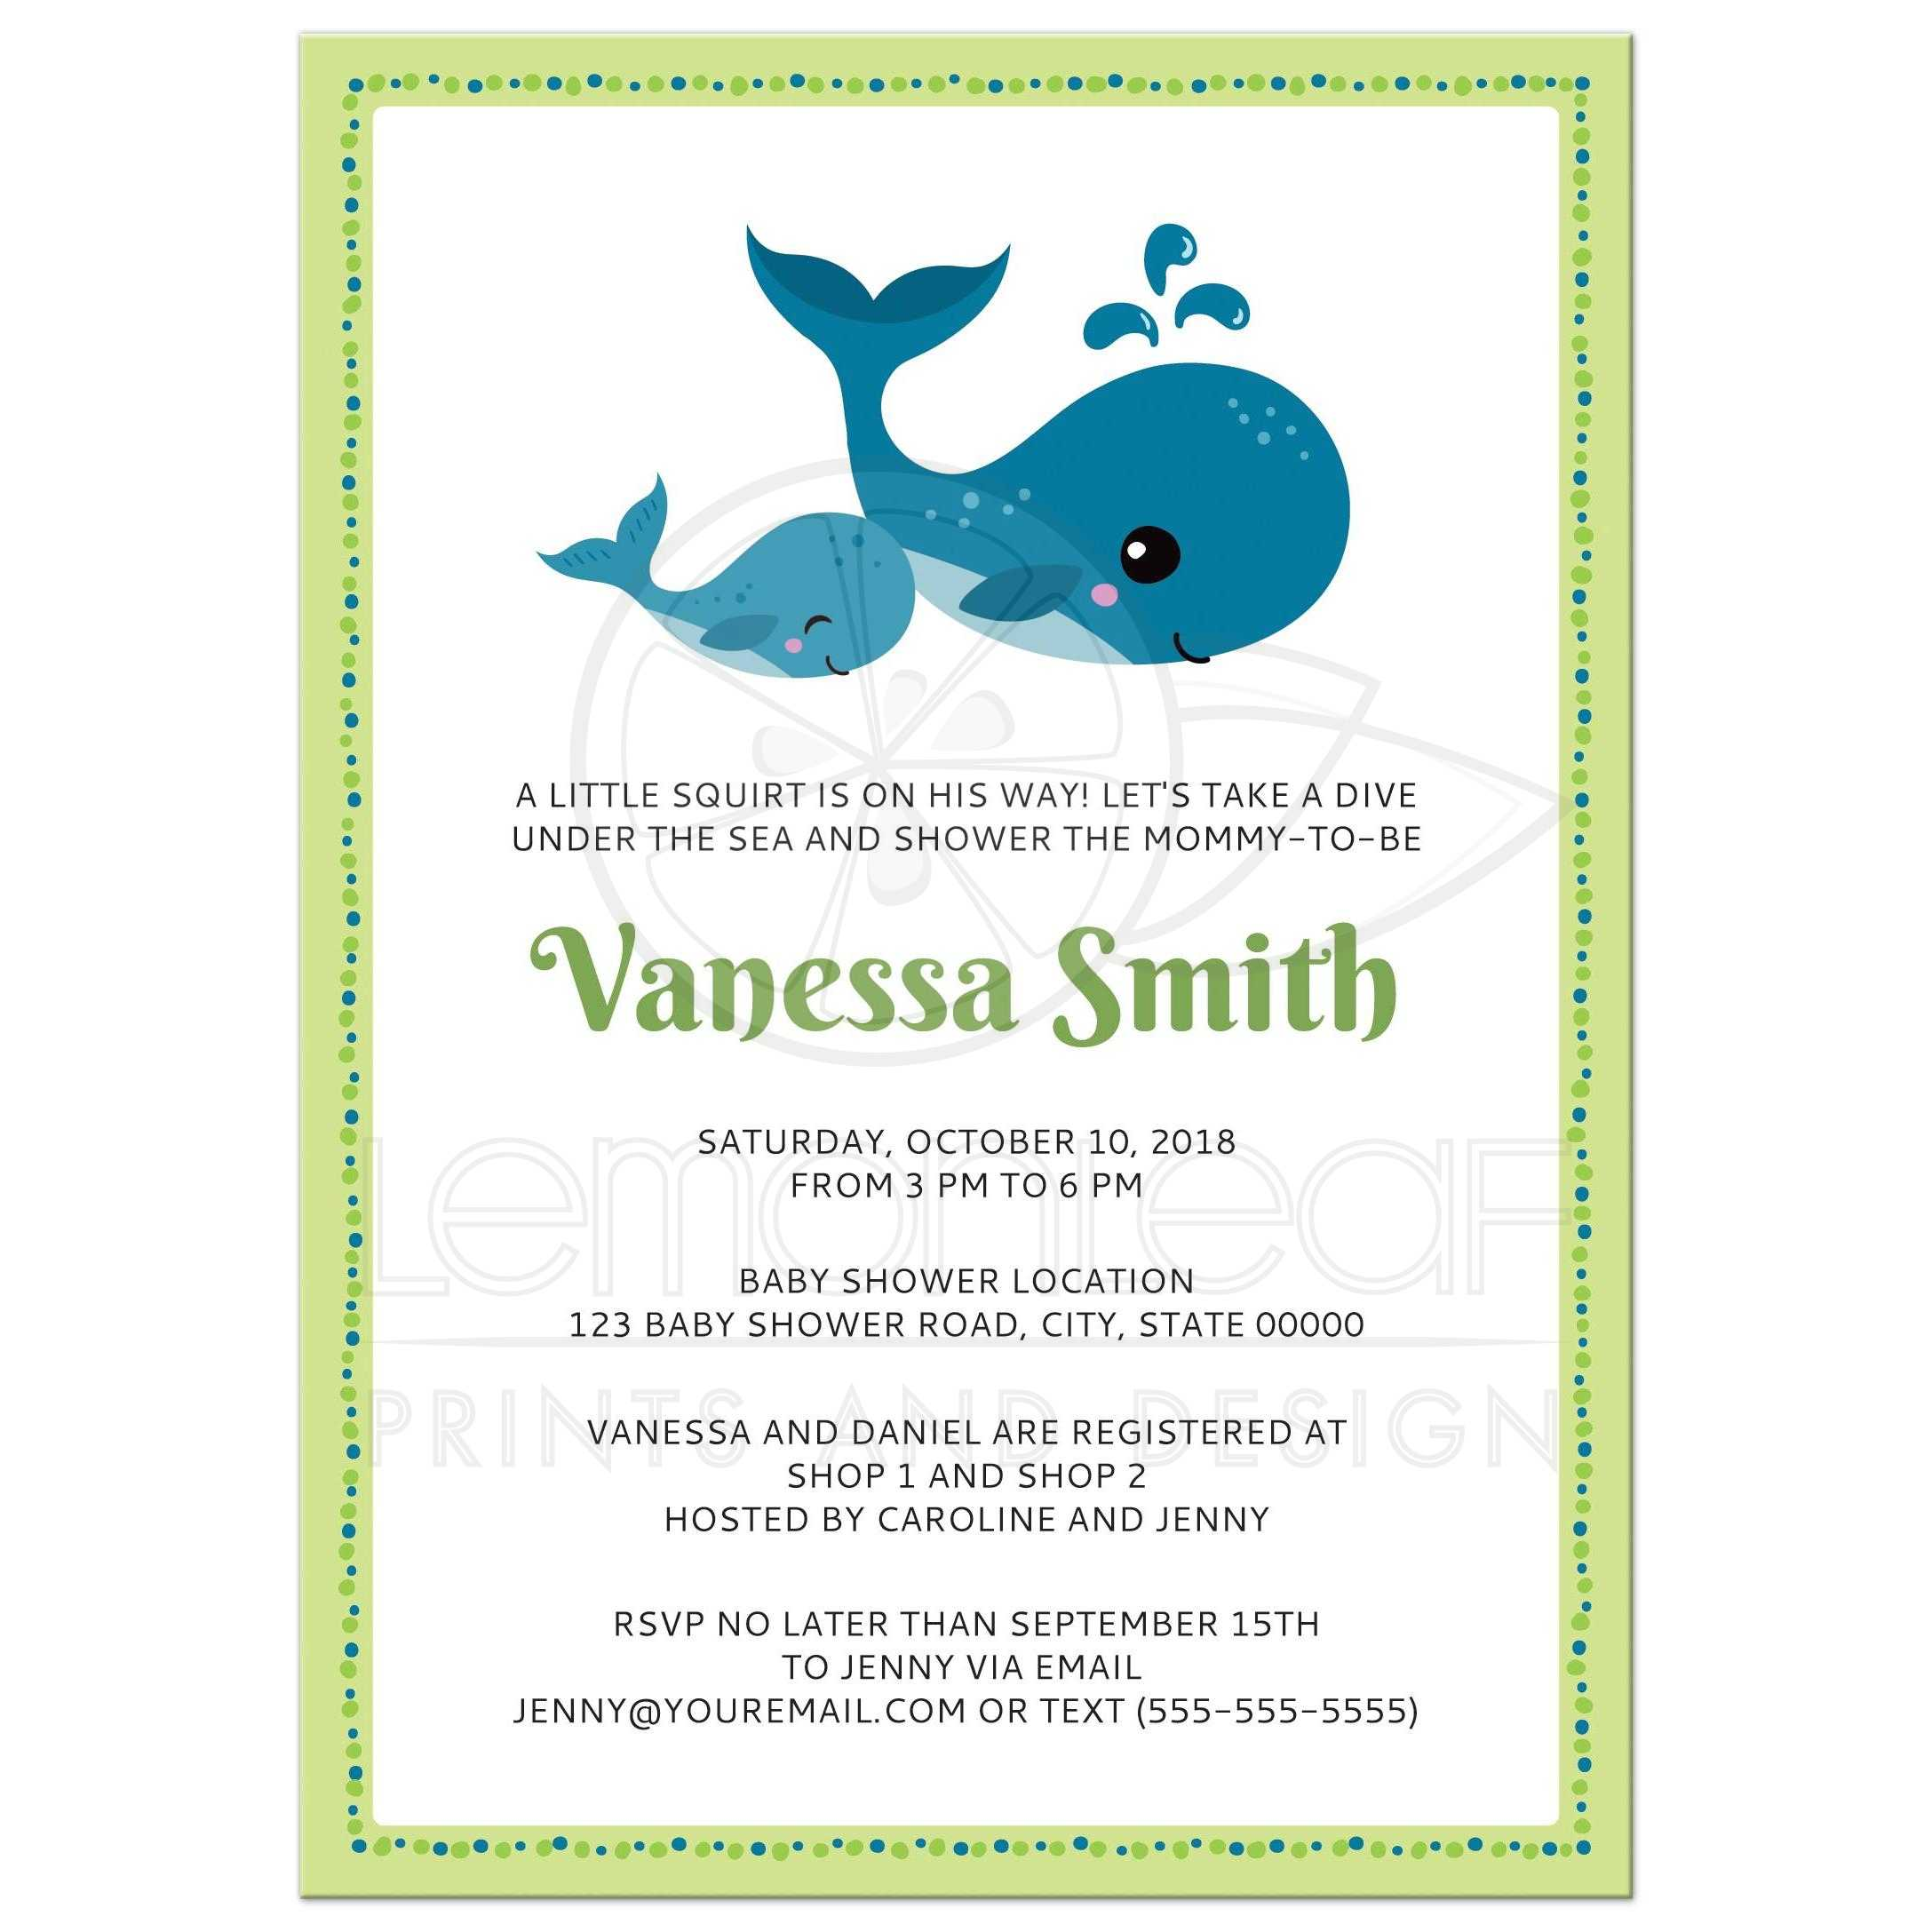 Image Of Baby Shower Invitations Via Email Free Baby Shower ...